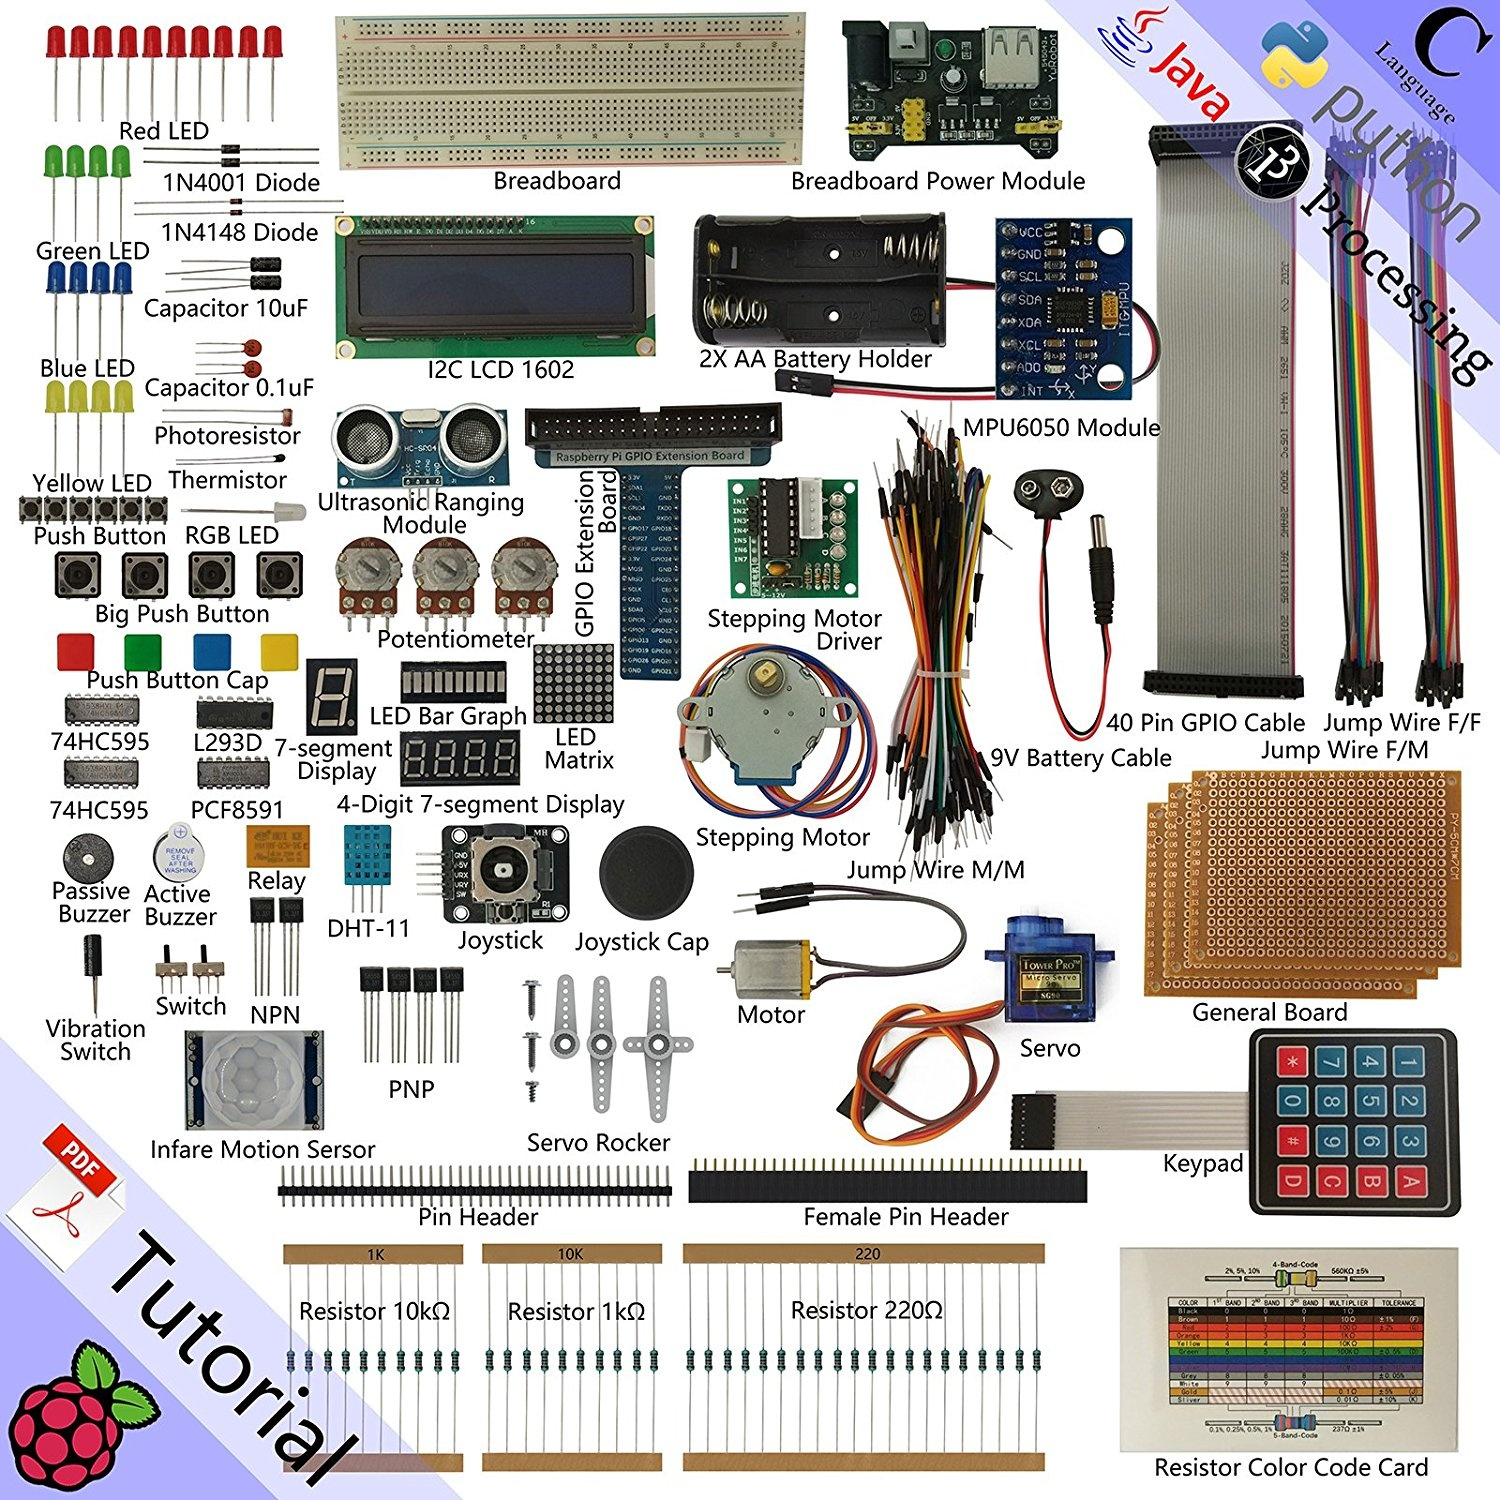 Freenove Ultimate Starter Kit for Raspberry Pi | Beginner Learning | Model  3B, 2B, B+ | Python, C, Java, Processing | 57 Projects, 401 Pages Detailed